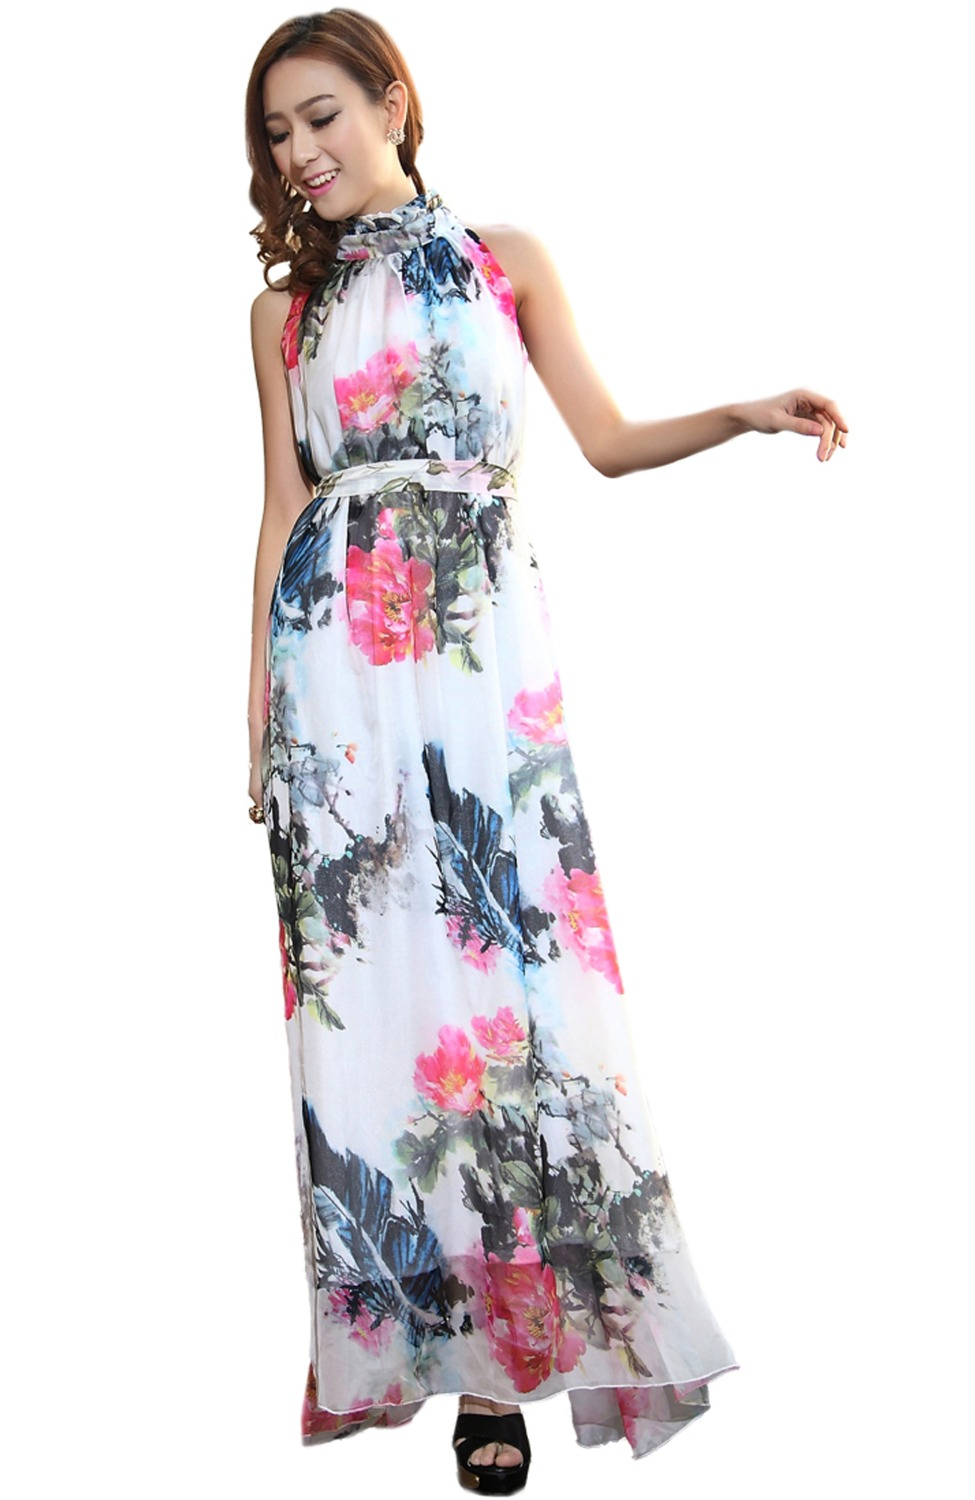 Women 39 s summer floral printed chiffon short maxi dress for Print maxi dress for wedding